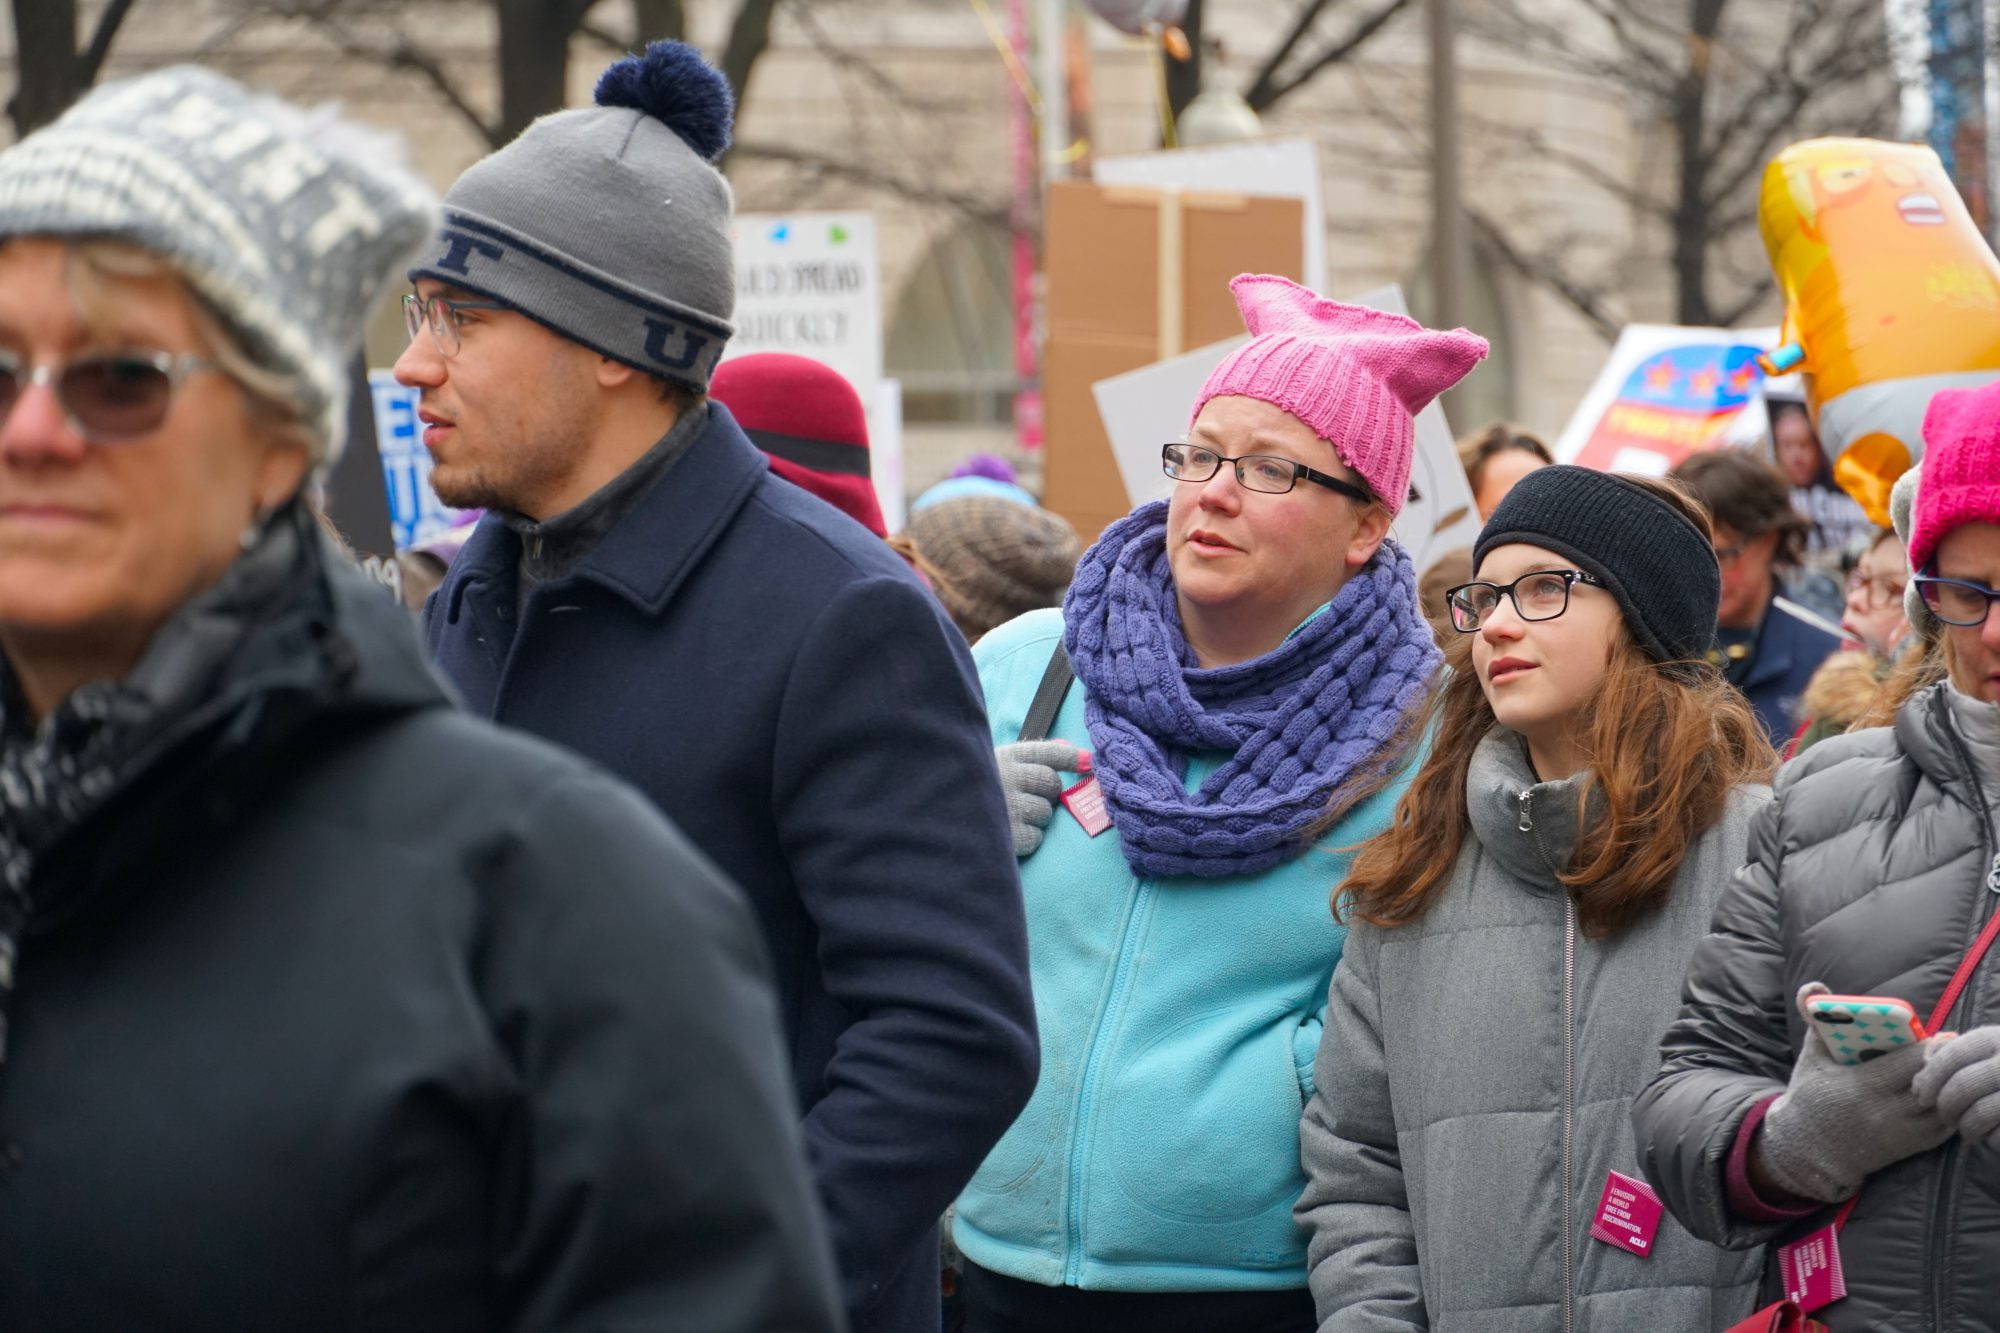 A mother and daughter look toward the Capitol as they march. (Ester Wells/MNS)